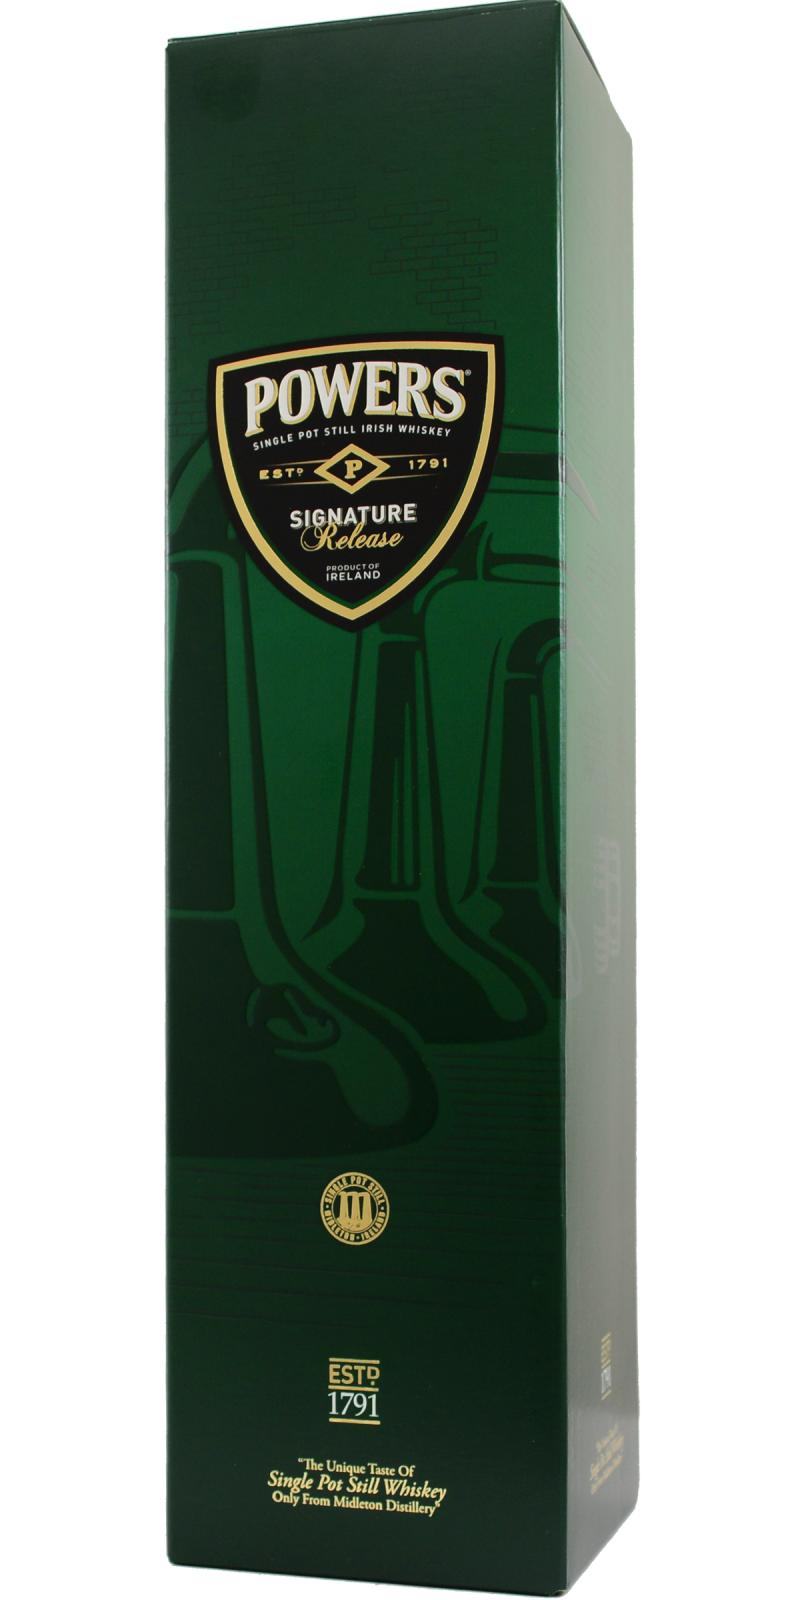 Powers Signature Release